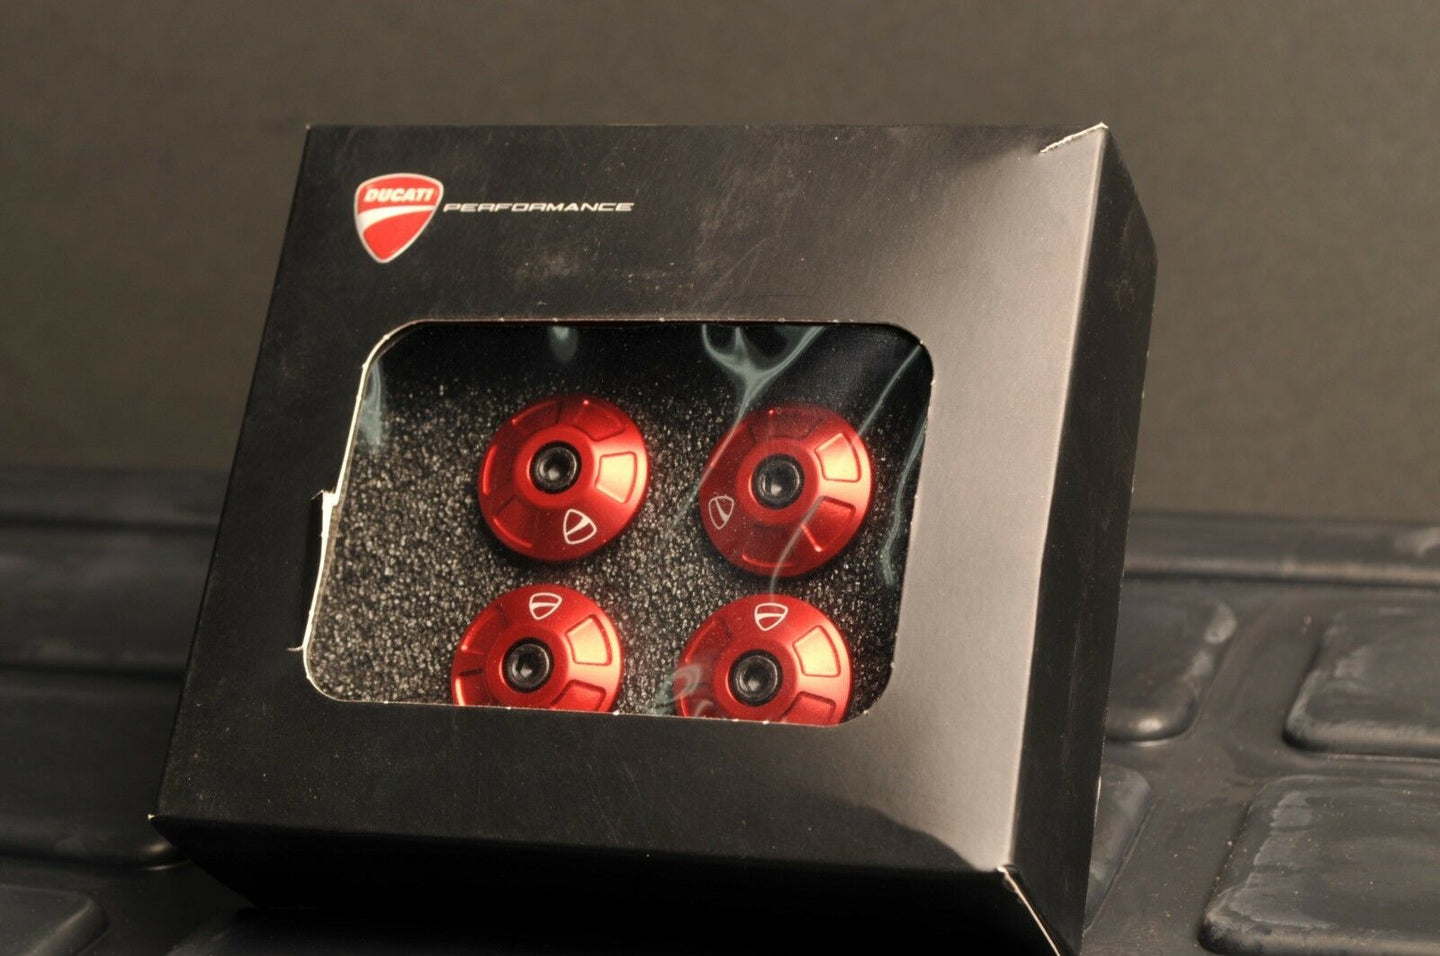 GENUINE DUCATI 97380781A PERFORMANCE MONSTER 797 FRAME PLUGS CAPS RIVETS RED SET